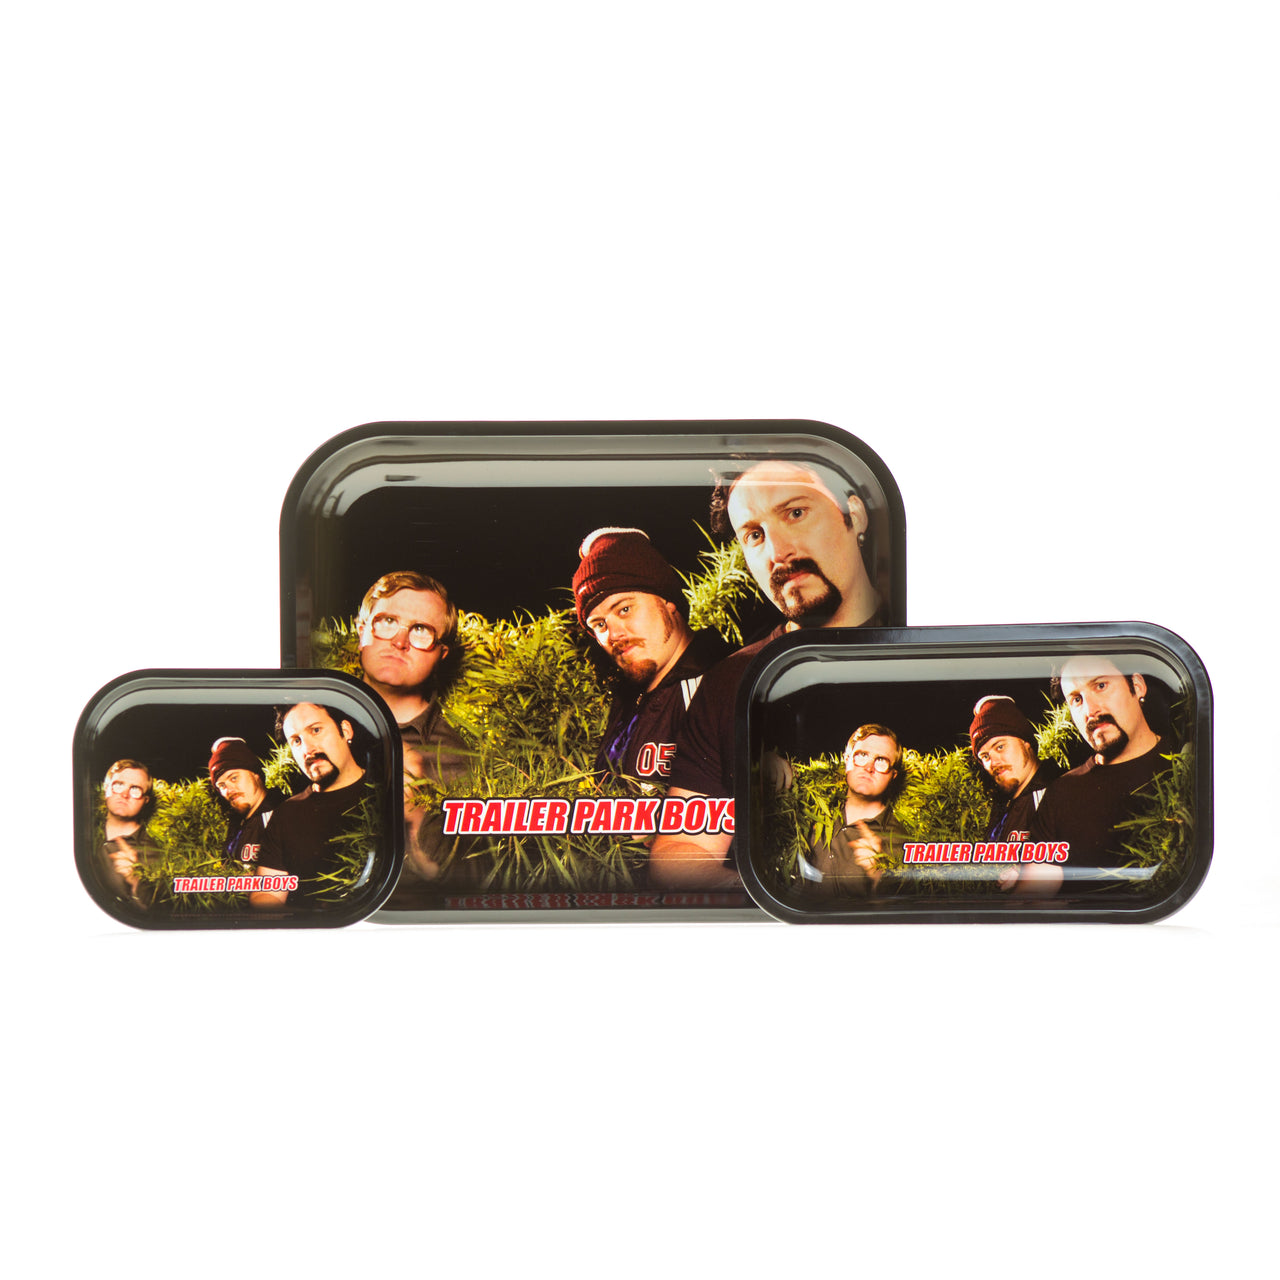 Trailer Park Boys Rolling Tray - The Boys Weed Field